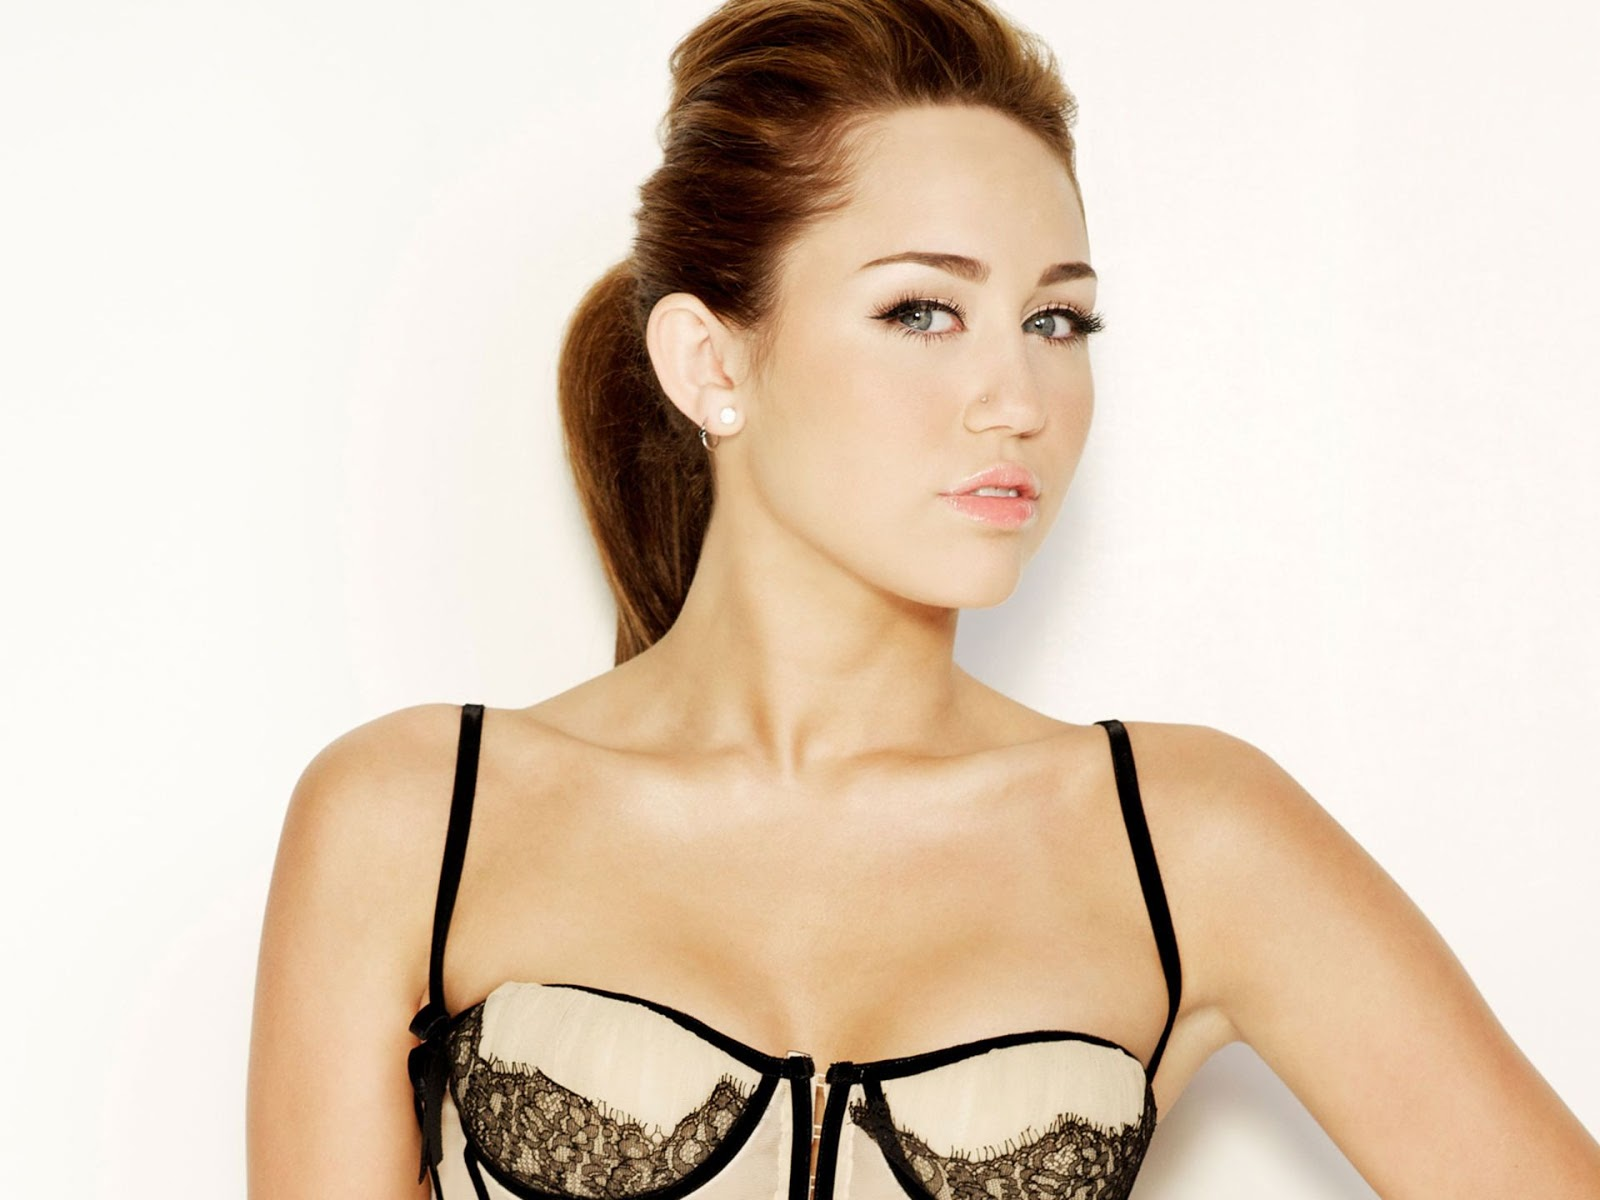 Great Miley cyrus hot hd see